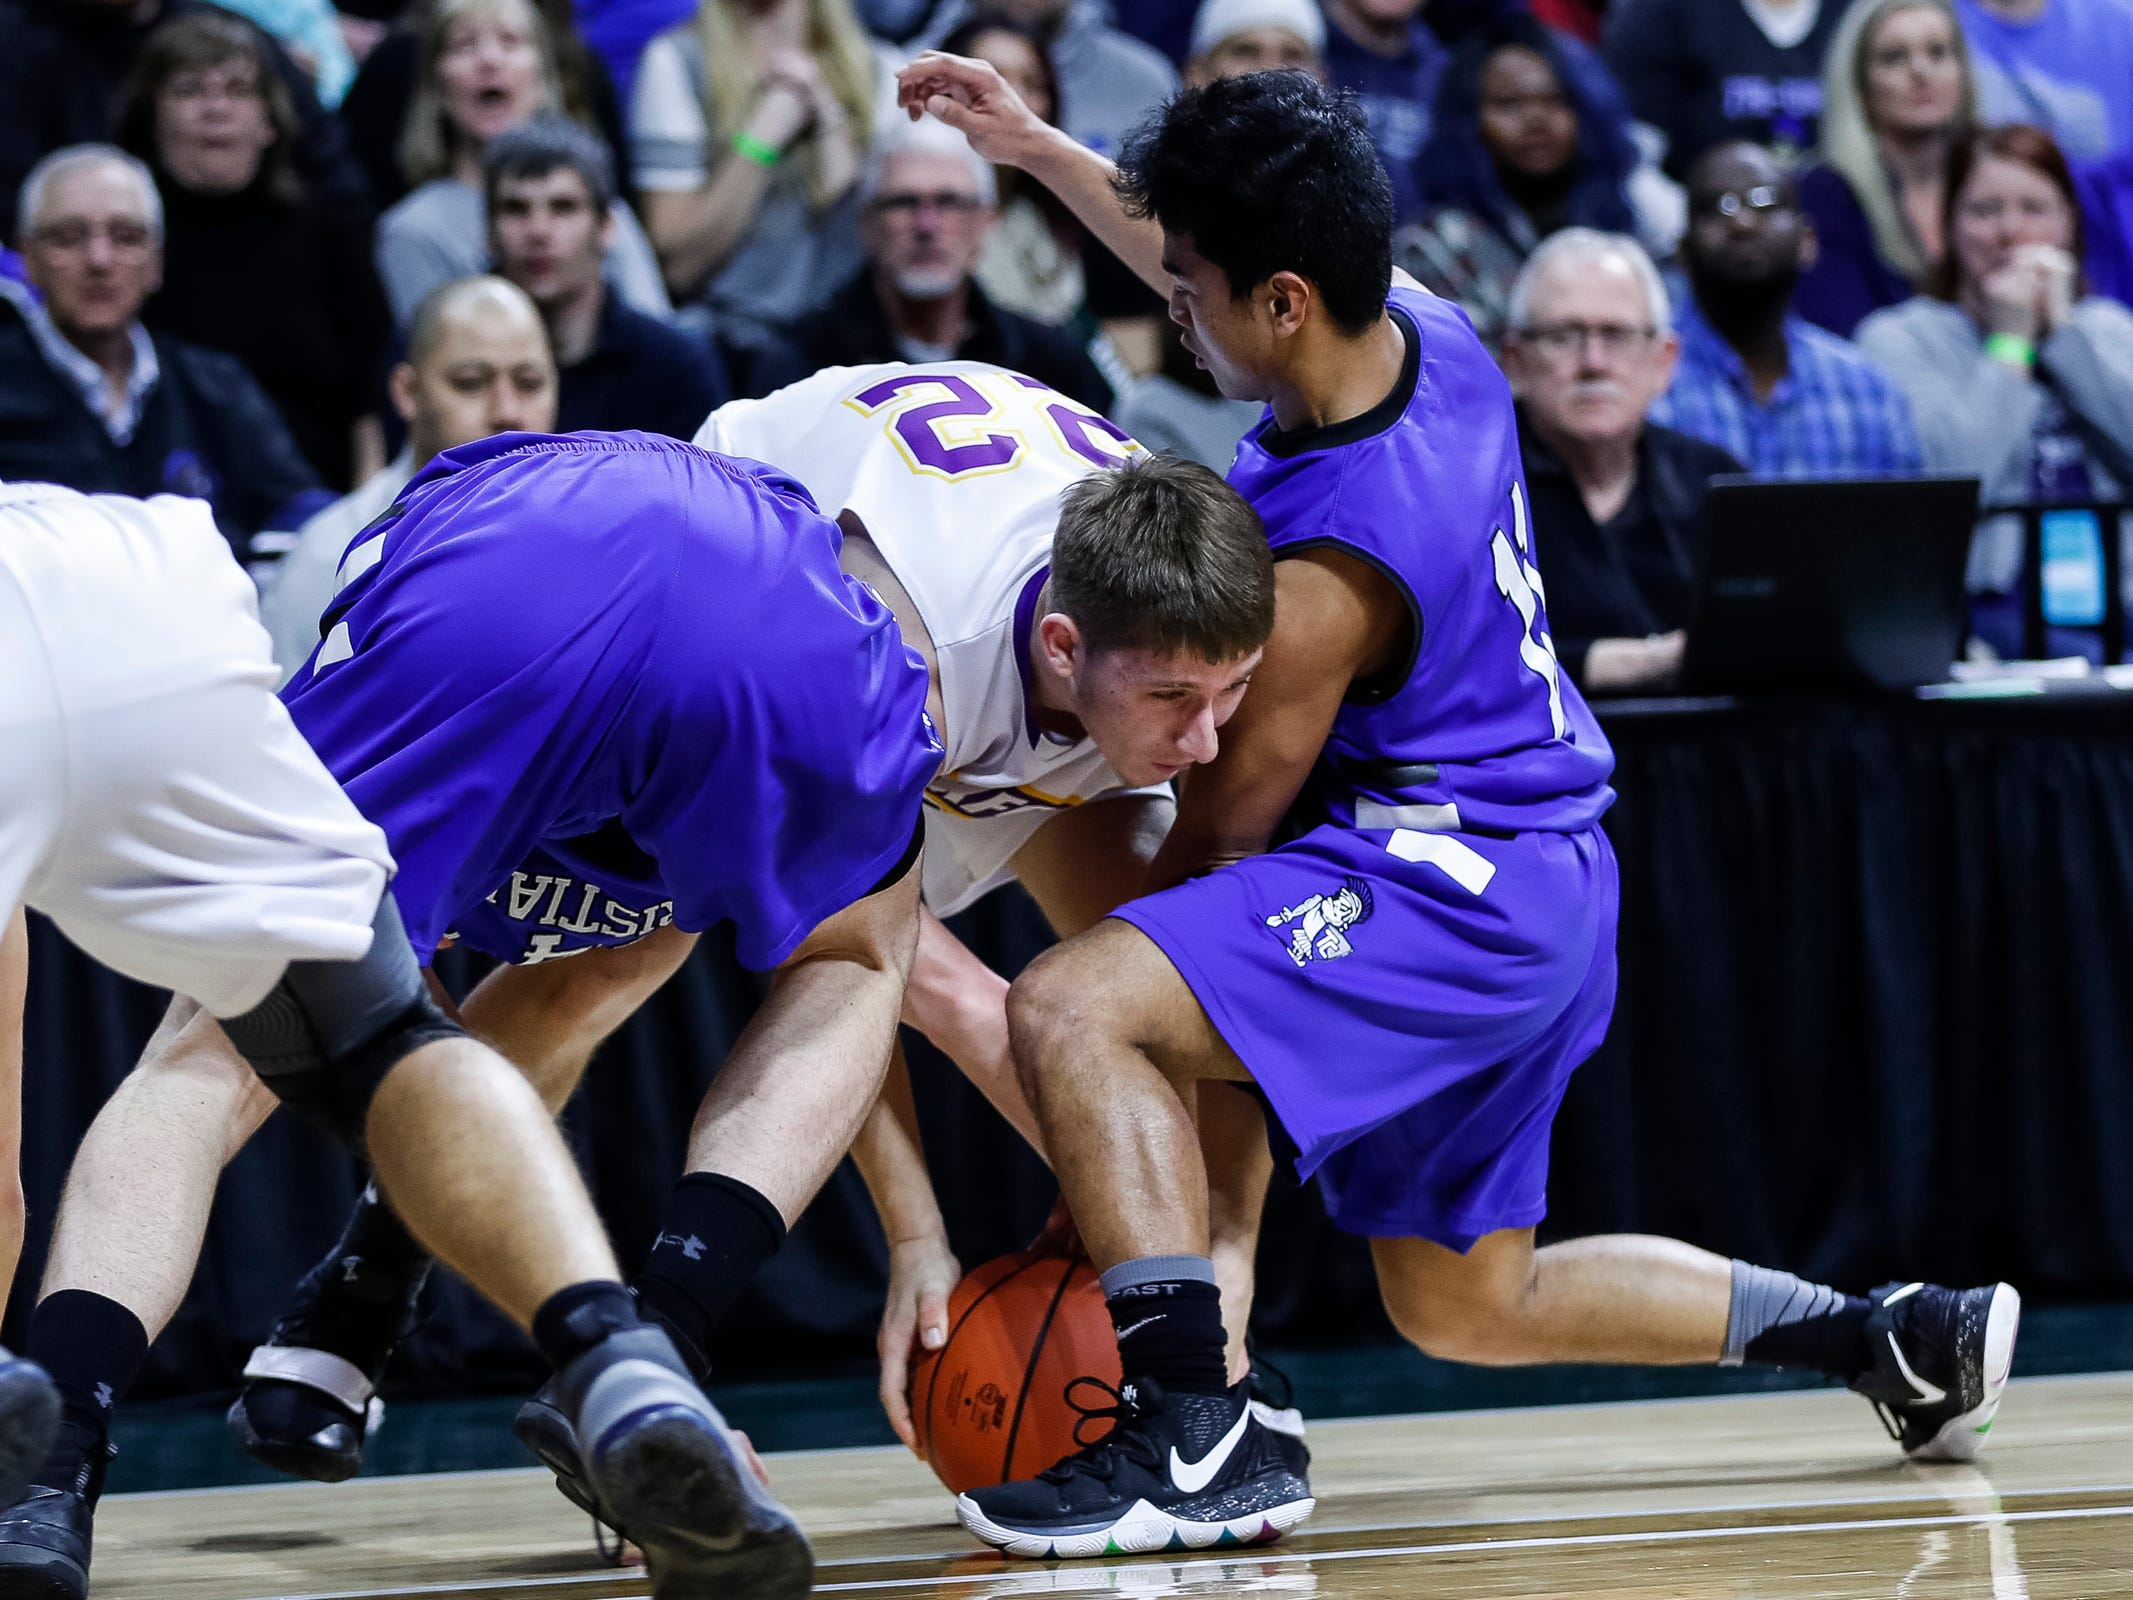 Frankfort's Ethan Ness (22) battle for the loose ball with Wyoming Tri-unity Christian's Benson Heath (11) during the first half of MHSAA Division 4 semifinal at the Breslin Center in East Lansing, Thursday, March 14, 2019.